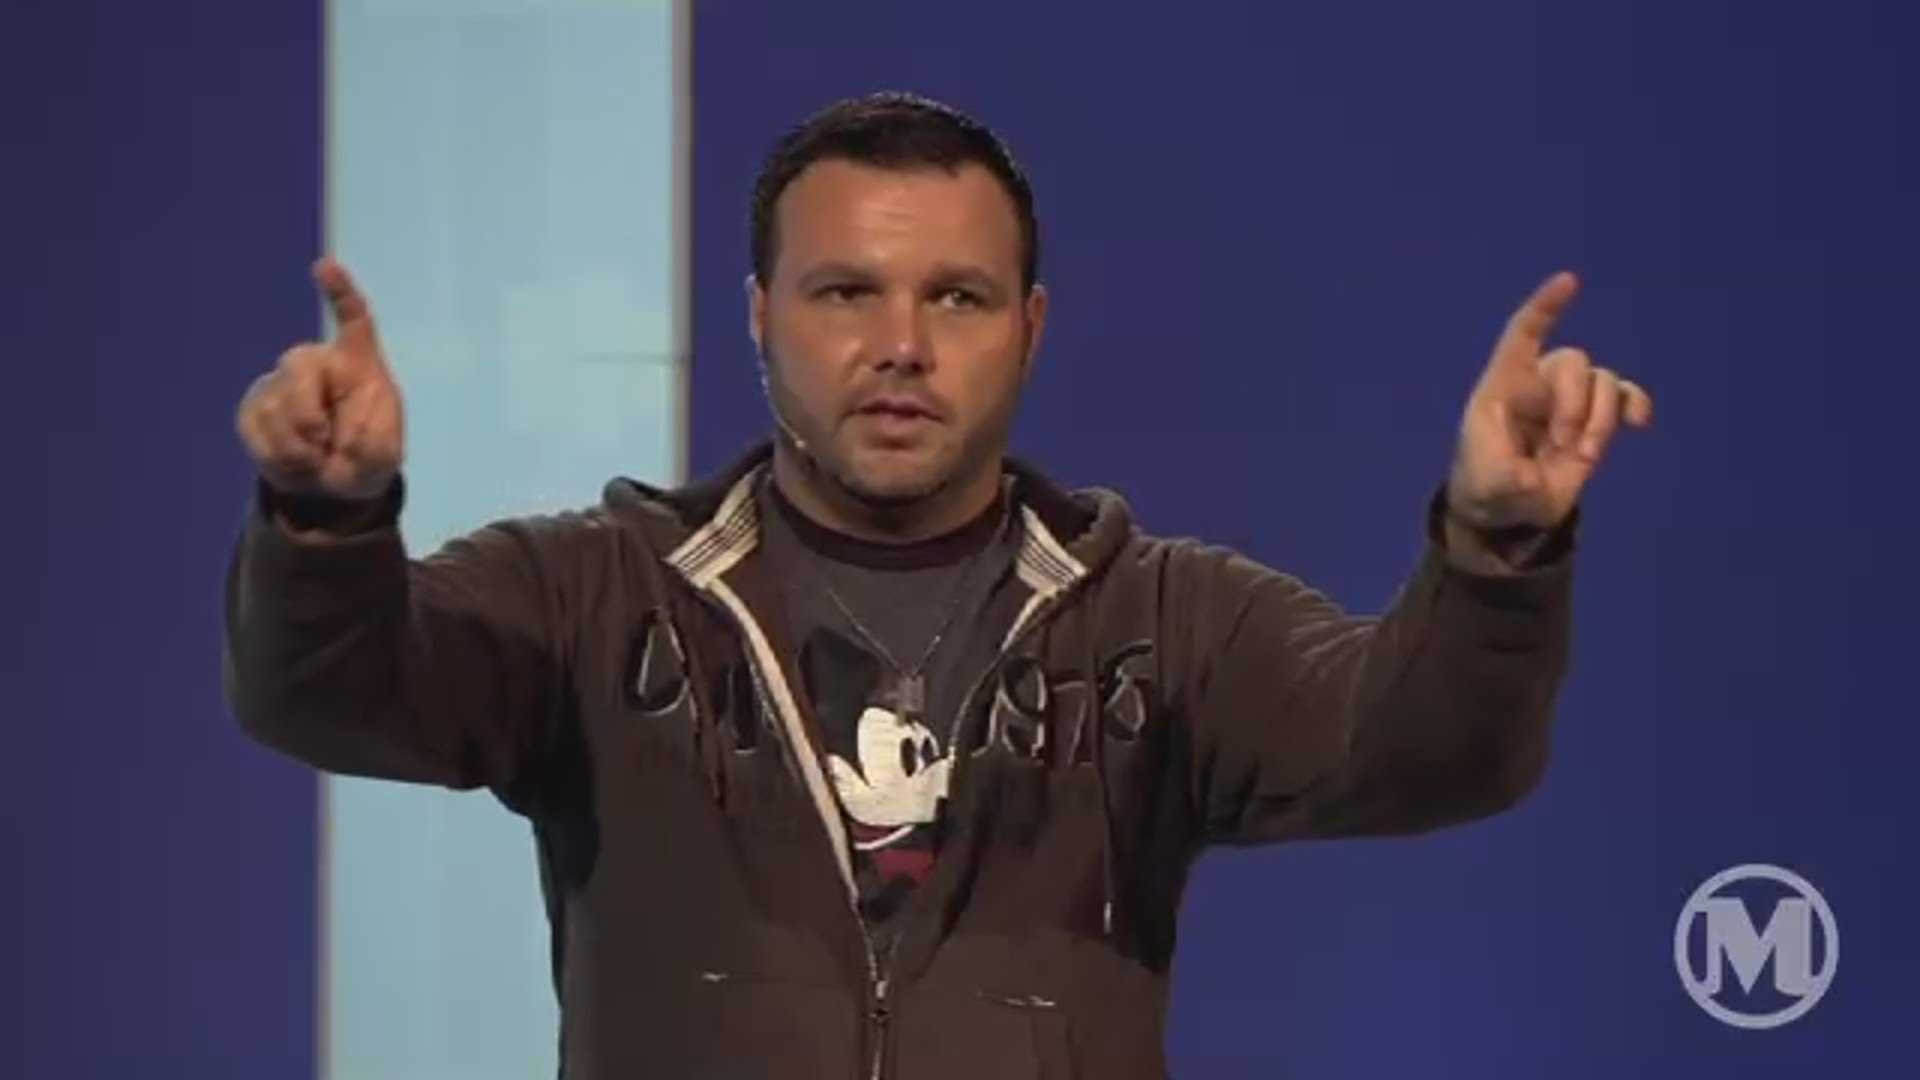 Pastor Mark Driscoll's Letter of Apology